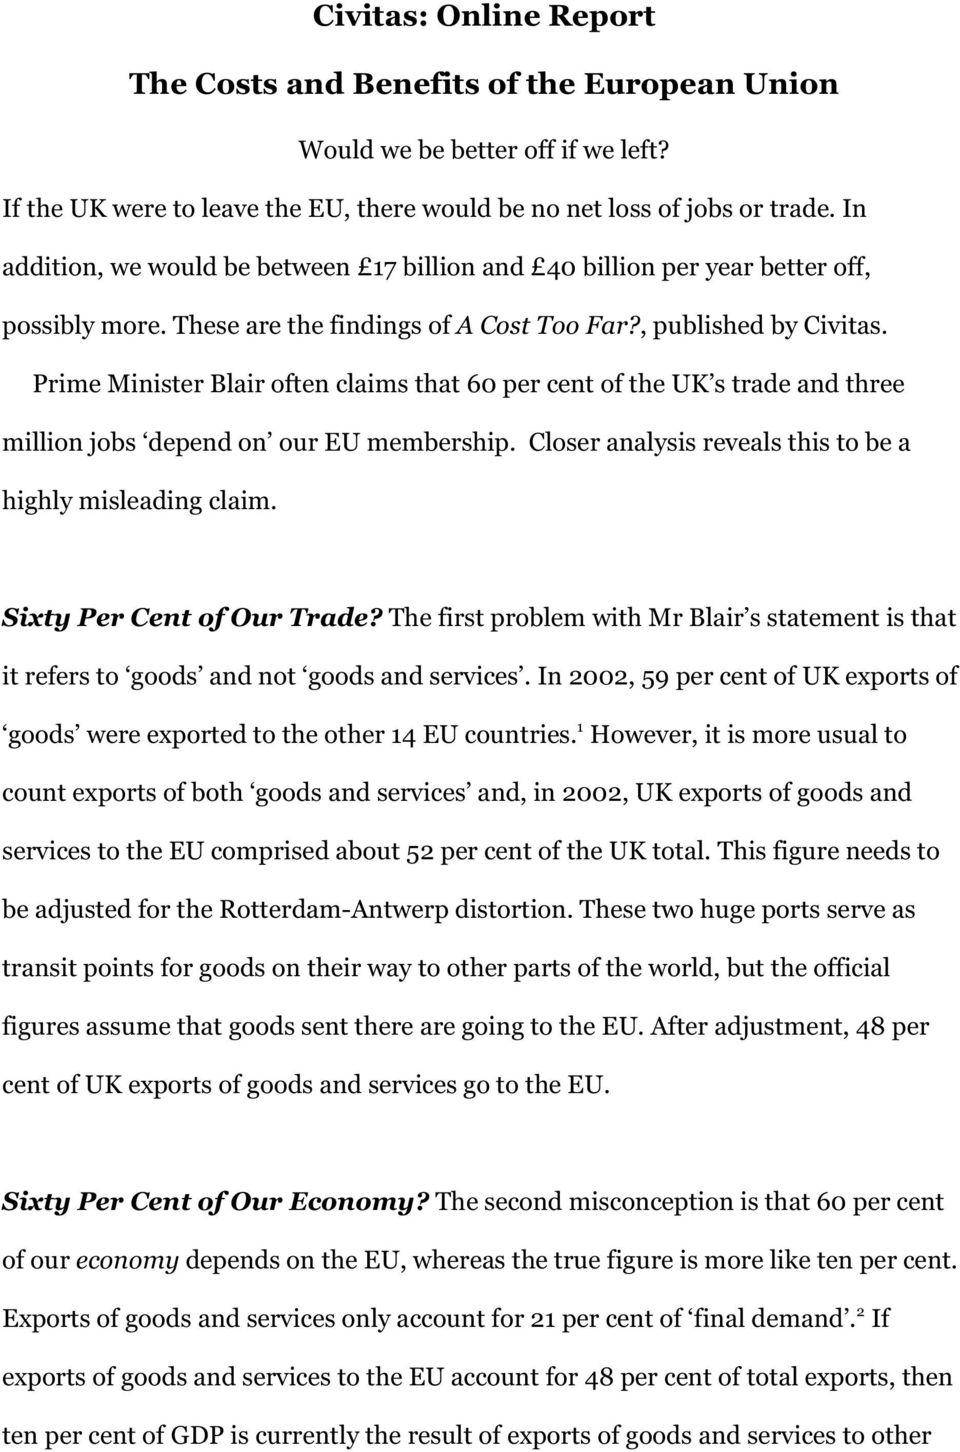 Prime Minister Blair often claims that 60 per cent of the UK s trade and three million jobs depend on our EU membership. Closer analysis reveals this to be a highly misleading claim.